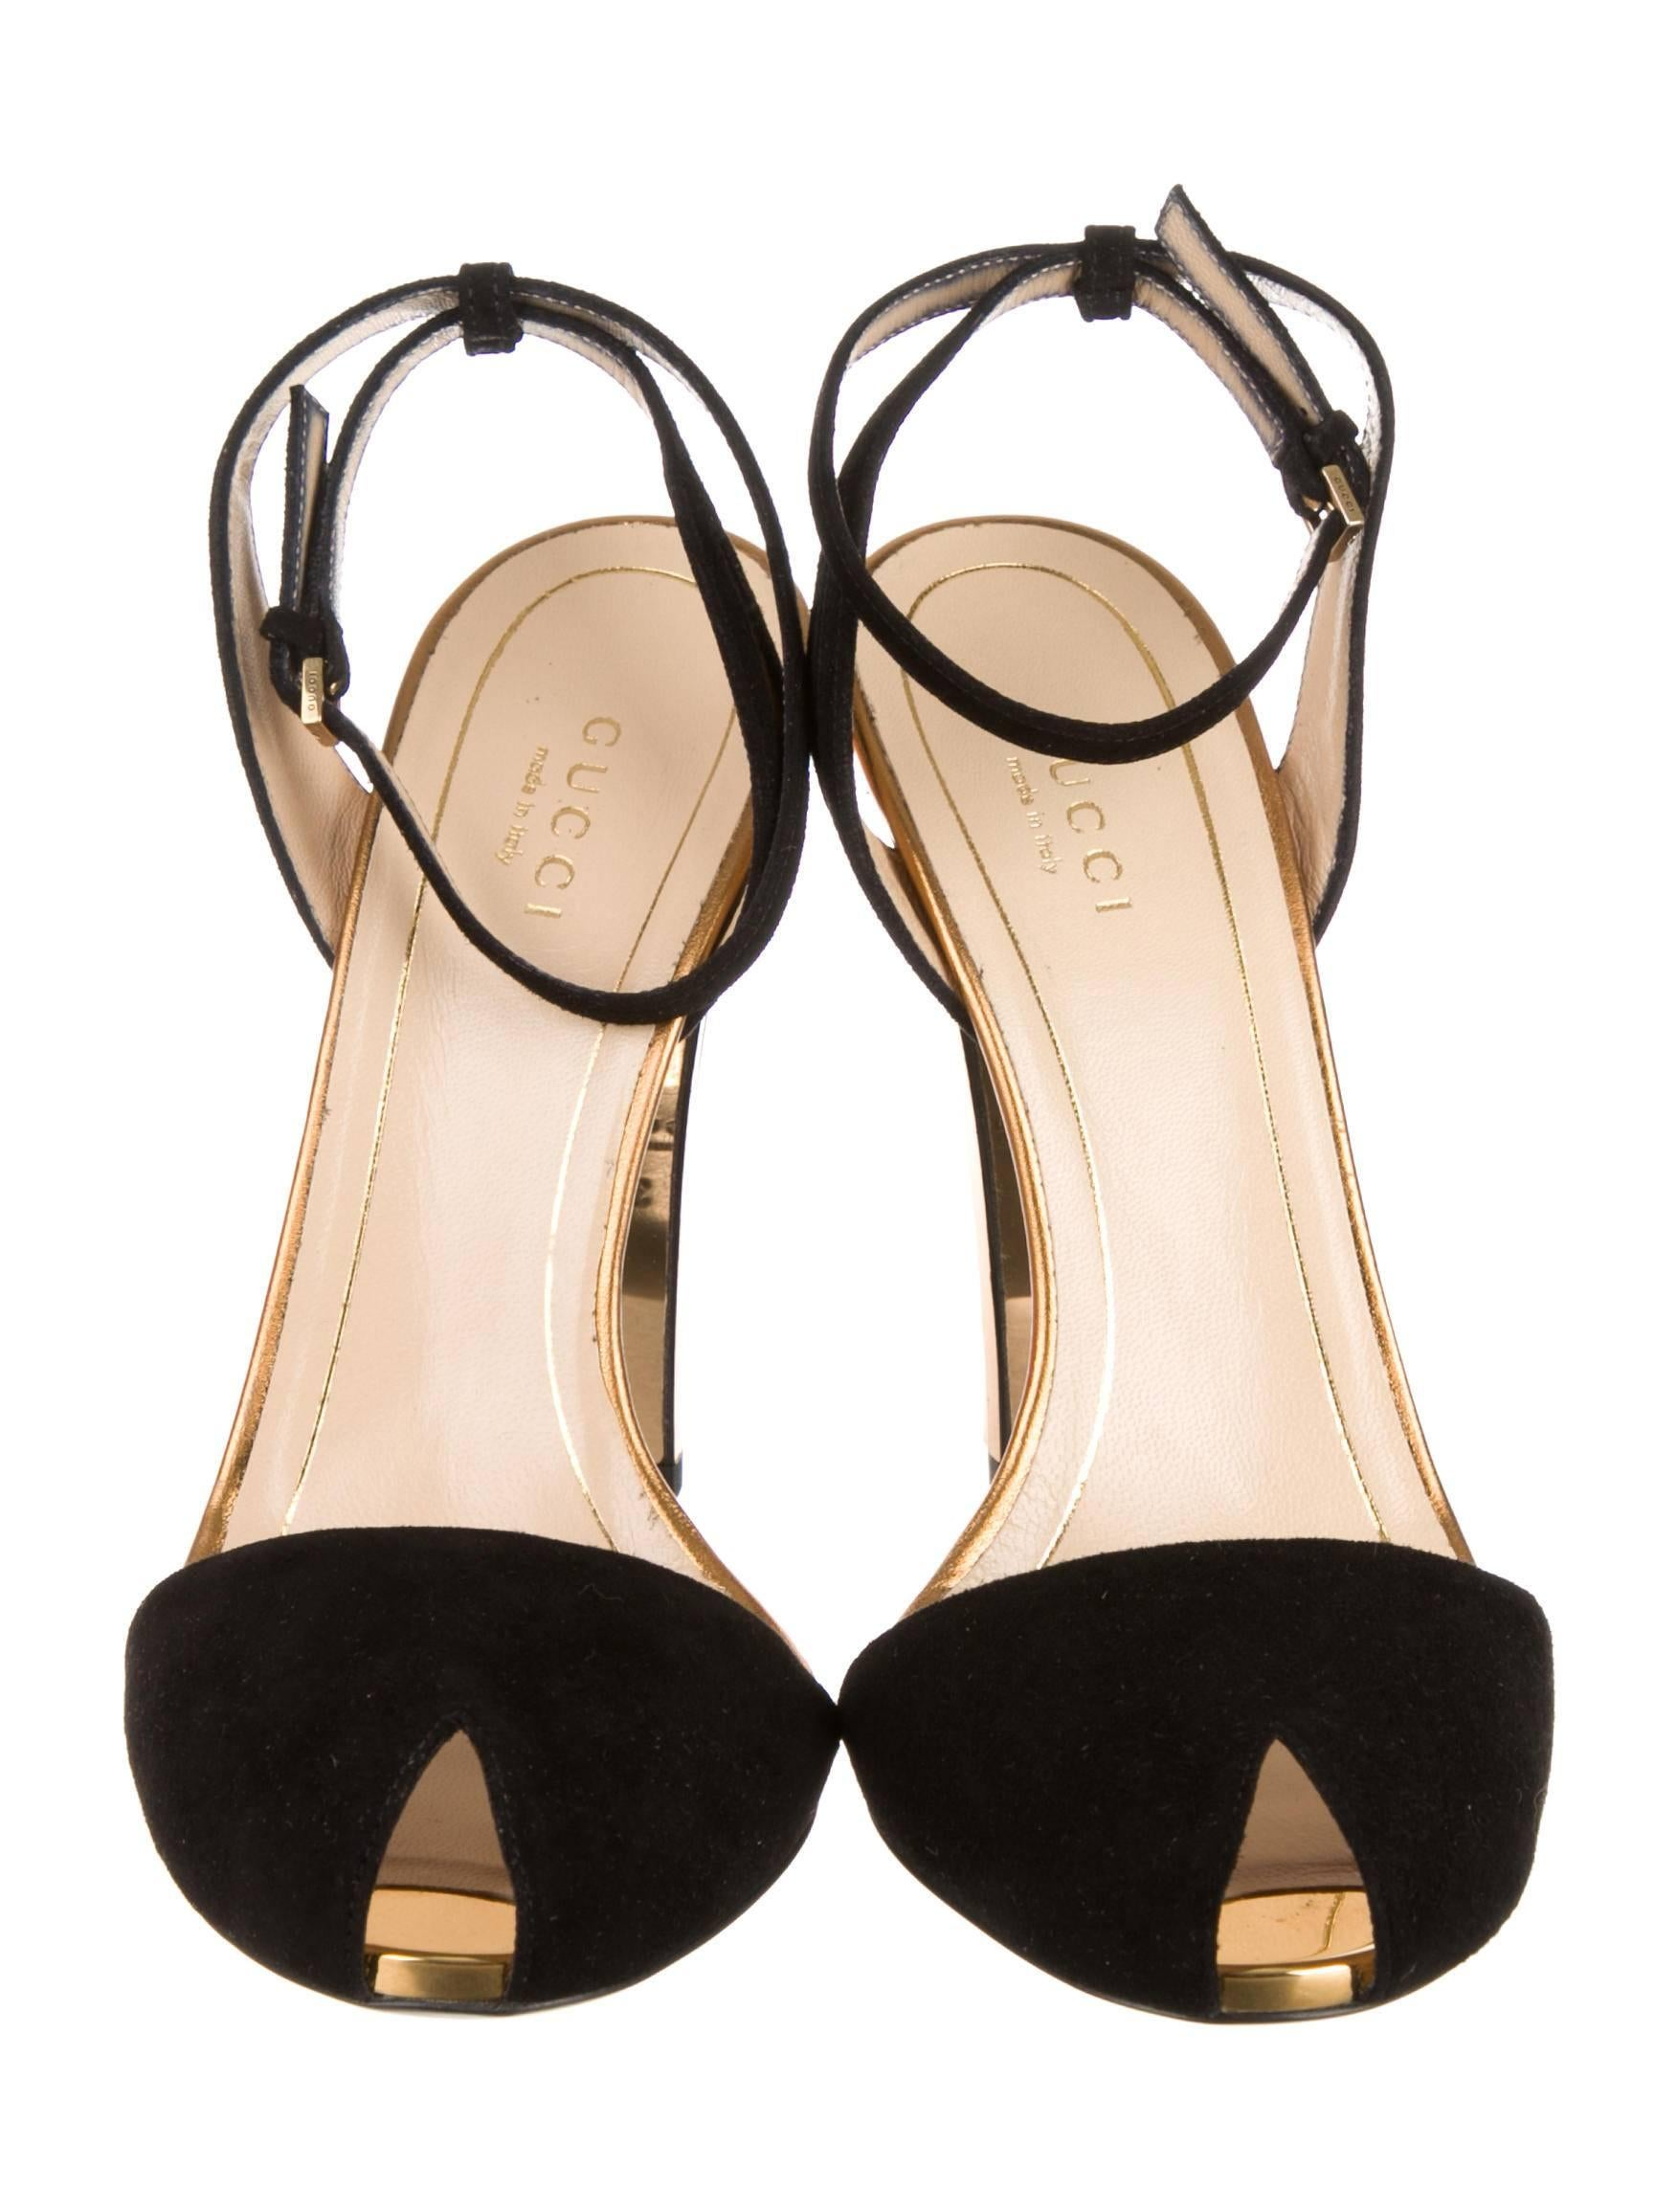 996210012be6 Gucci NEW Black Suede Gold Mirror Strappy High Heels Pumps in Box at 1stdibs